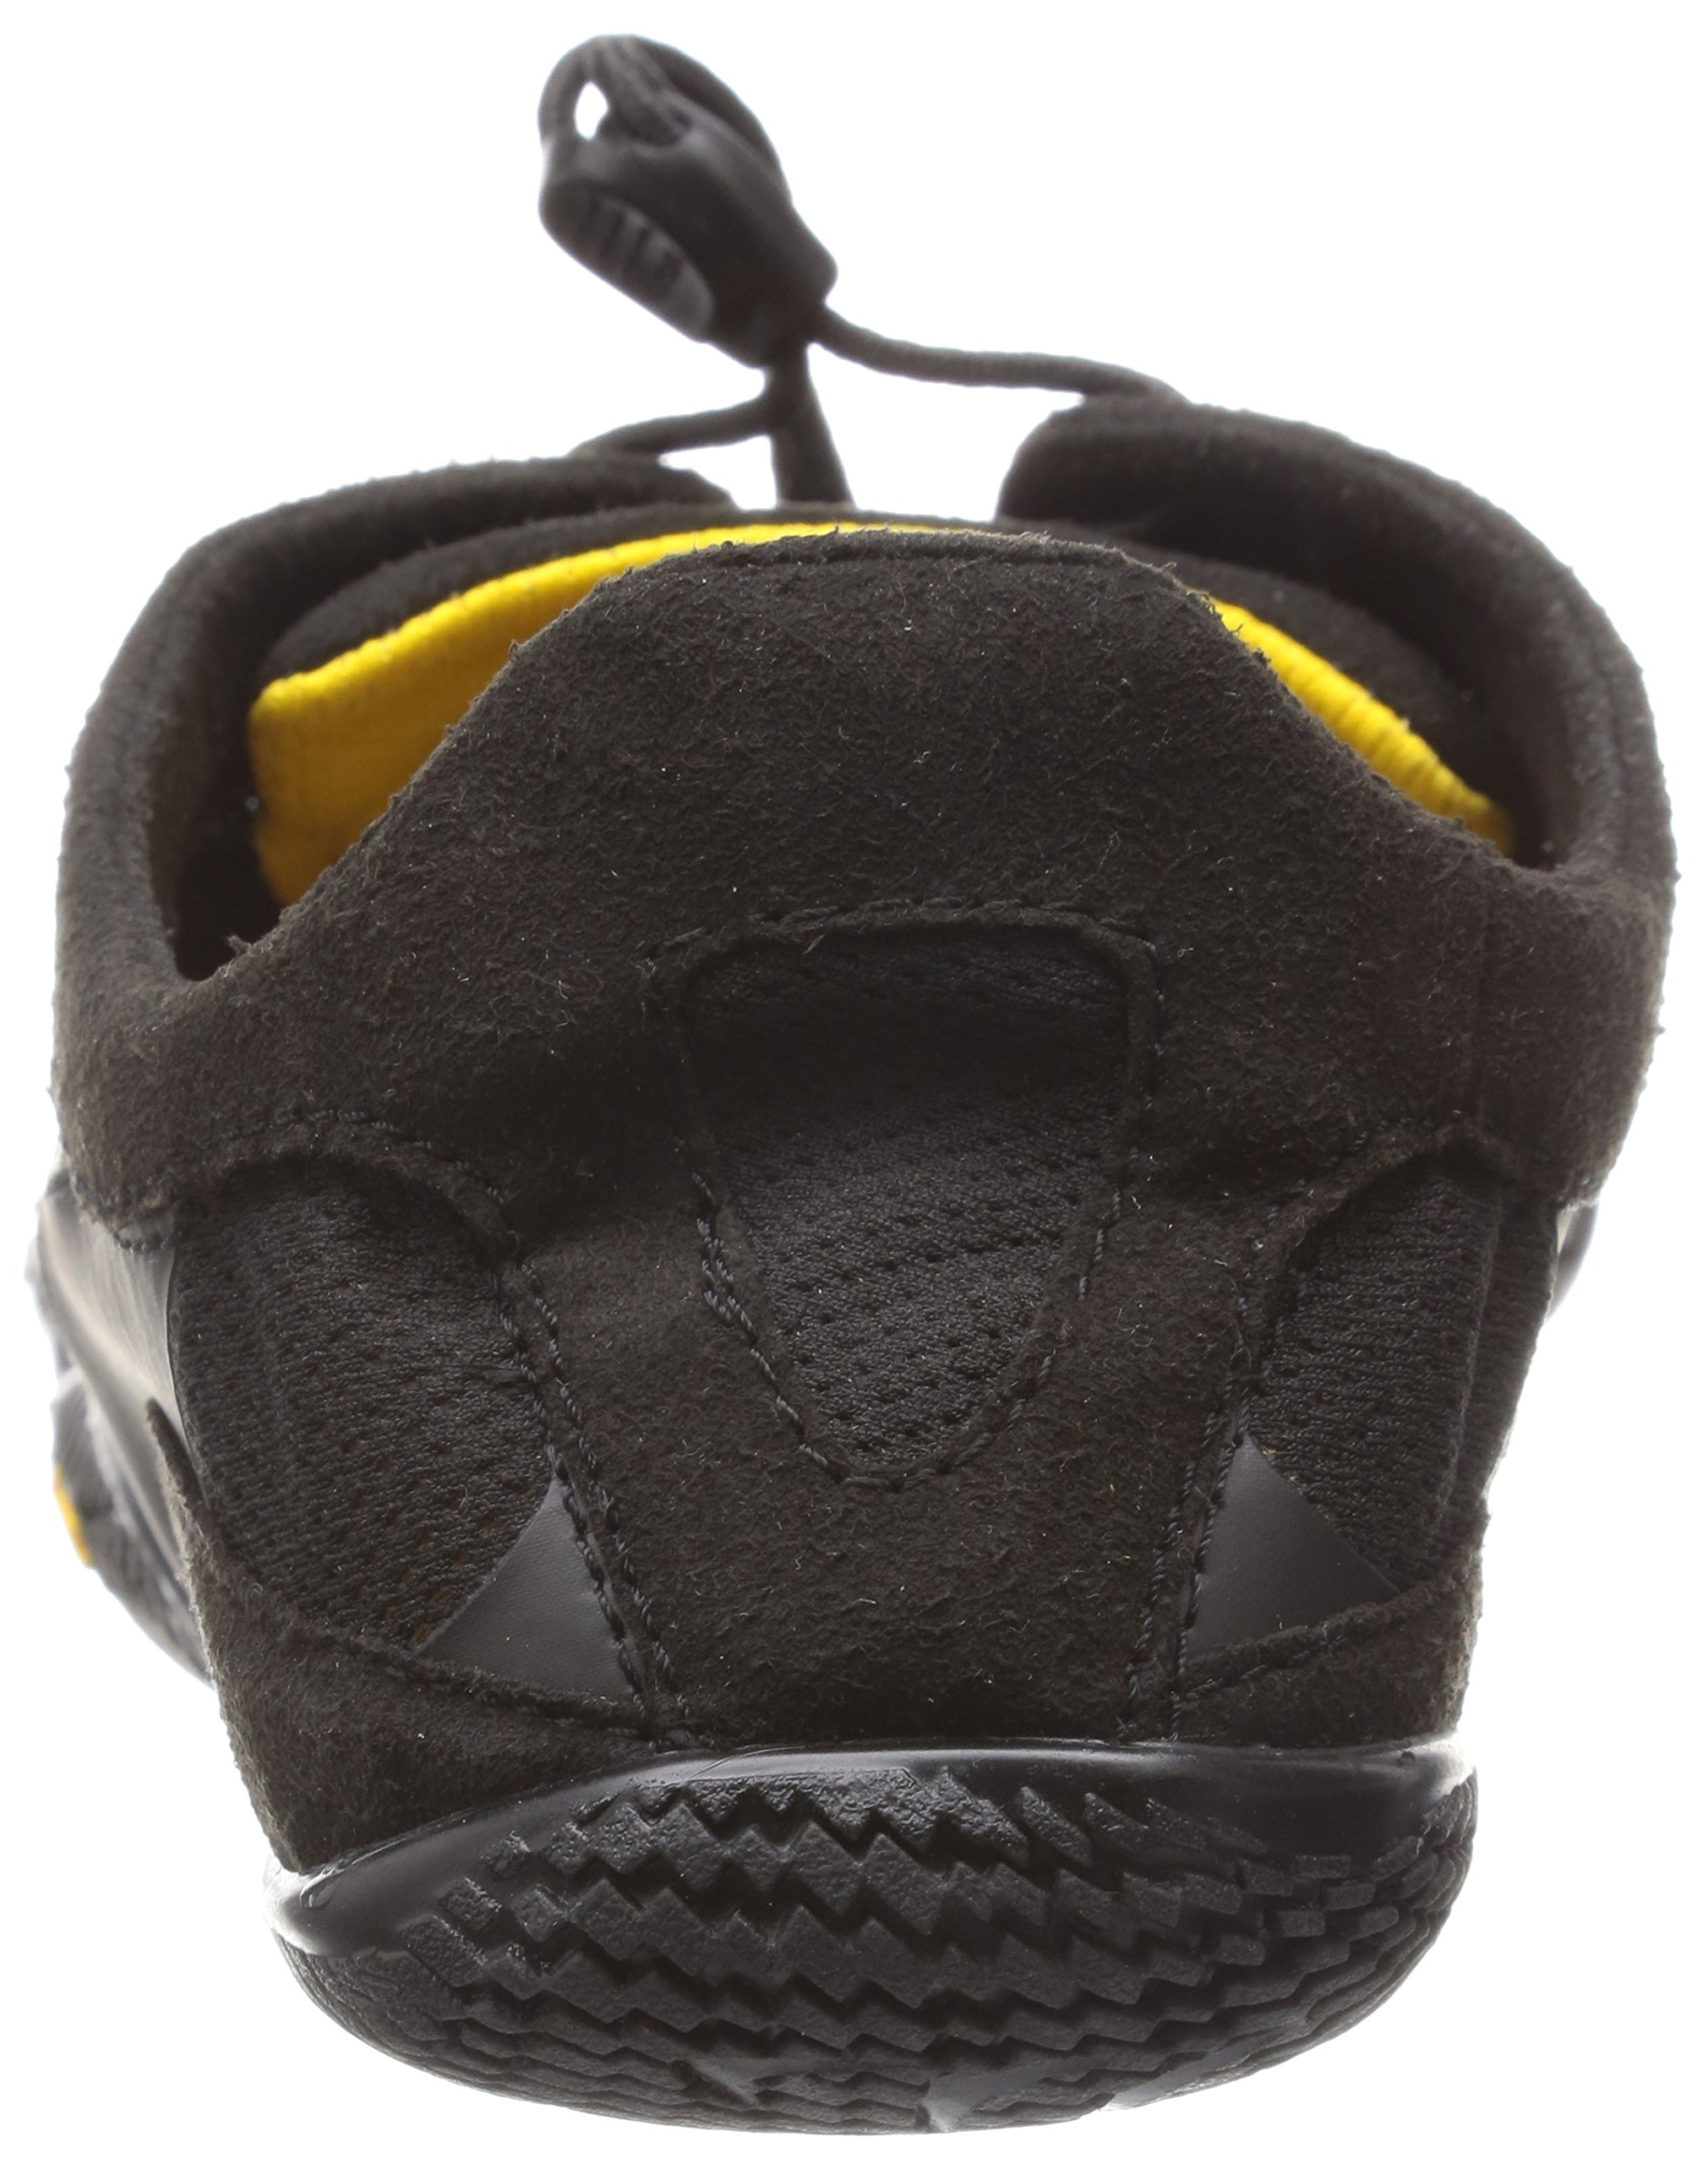 Vibram Men's KSO EVO Cross Training Shoe,Black,41 EU/8.5-9.0 M US by Vibram (Image #2)